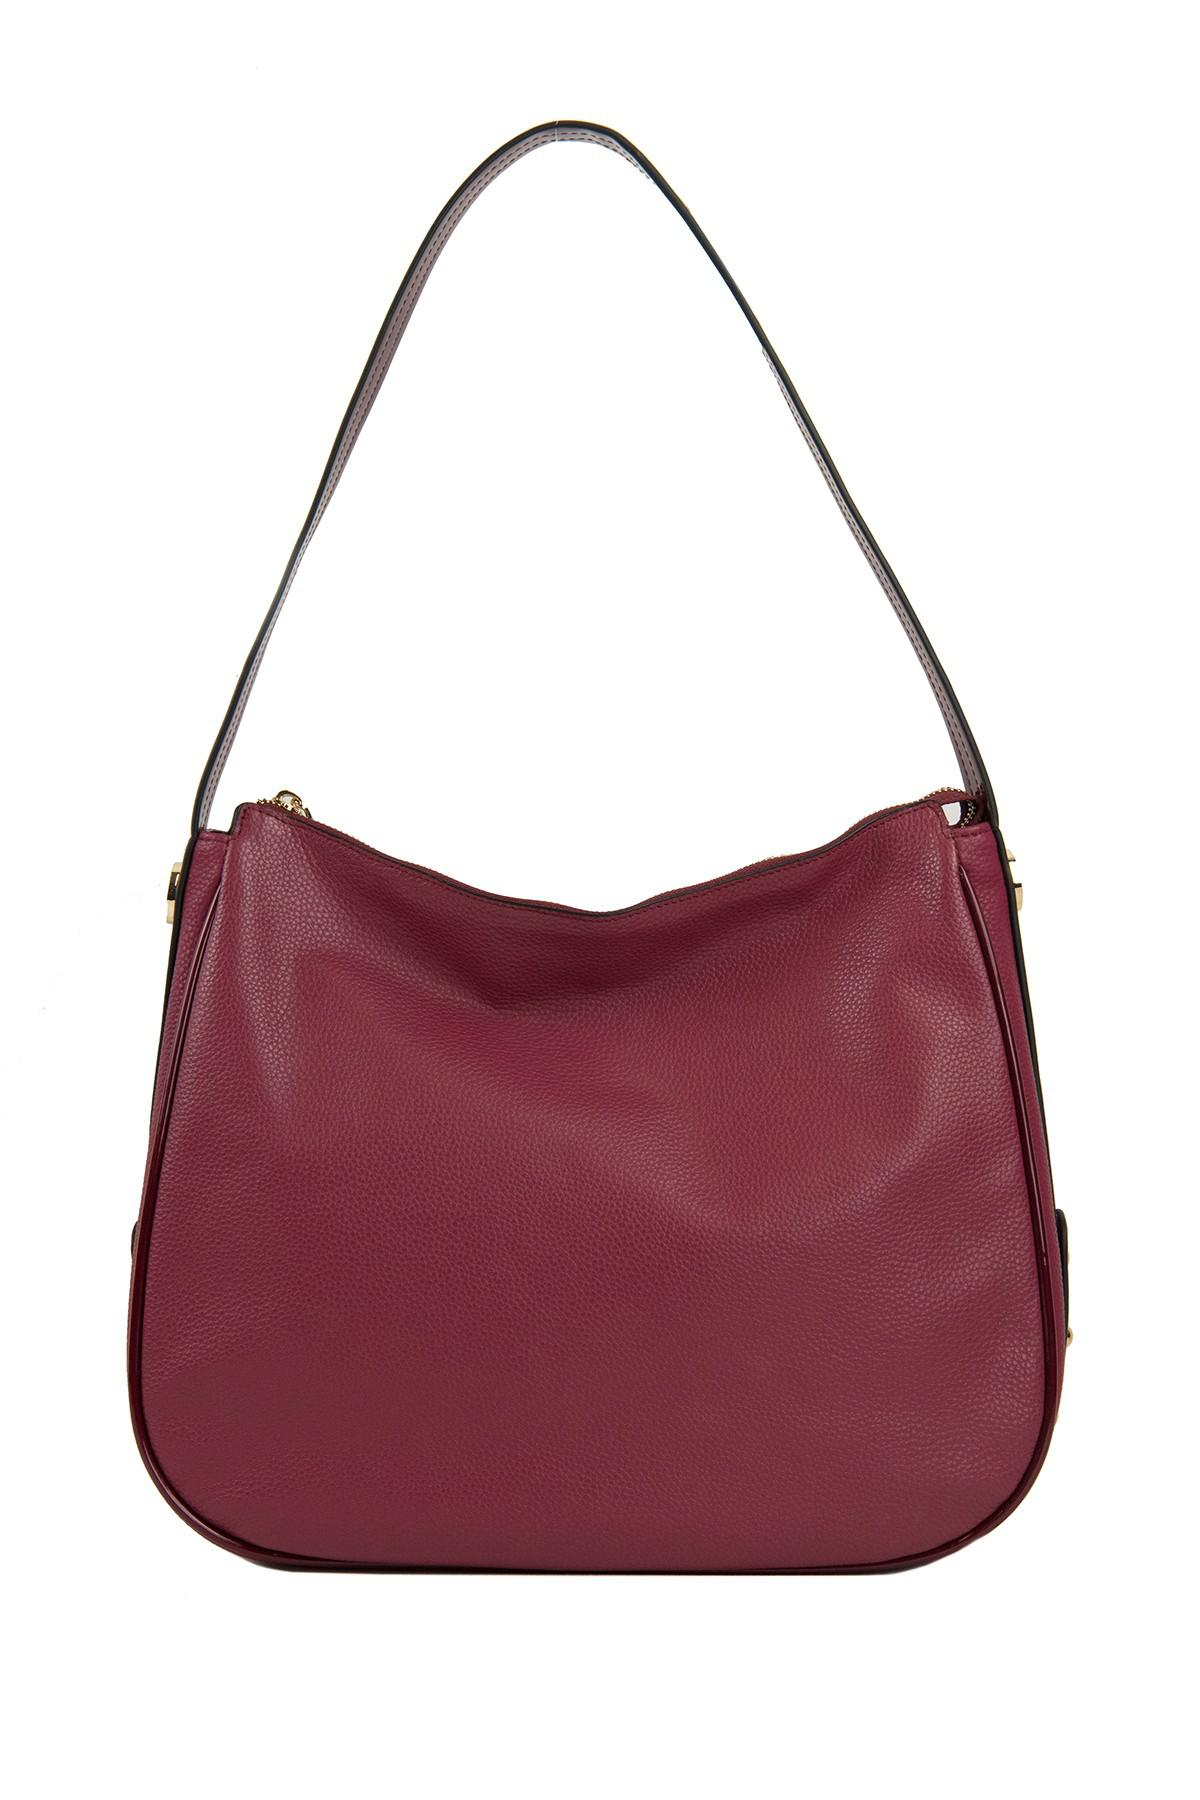 21259f2d4a Lyst - Perlina Krista Leather Hobo Bag in Red